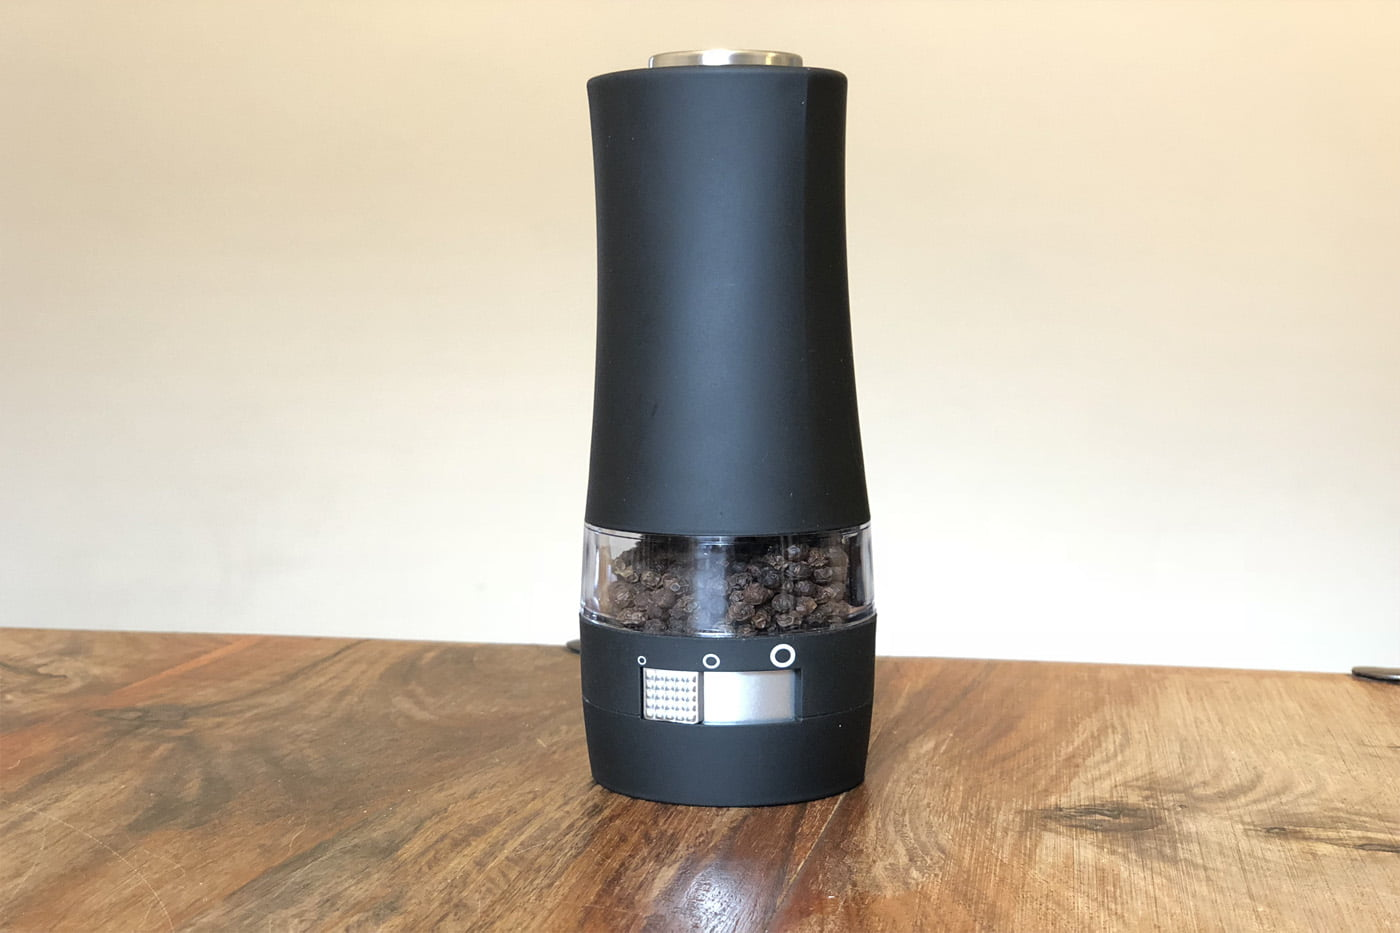 Ozeri Savore Soft Touch Electric Pepper Mill & Grinder